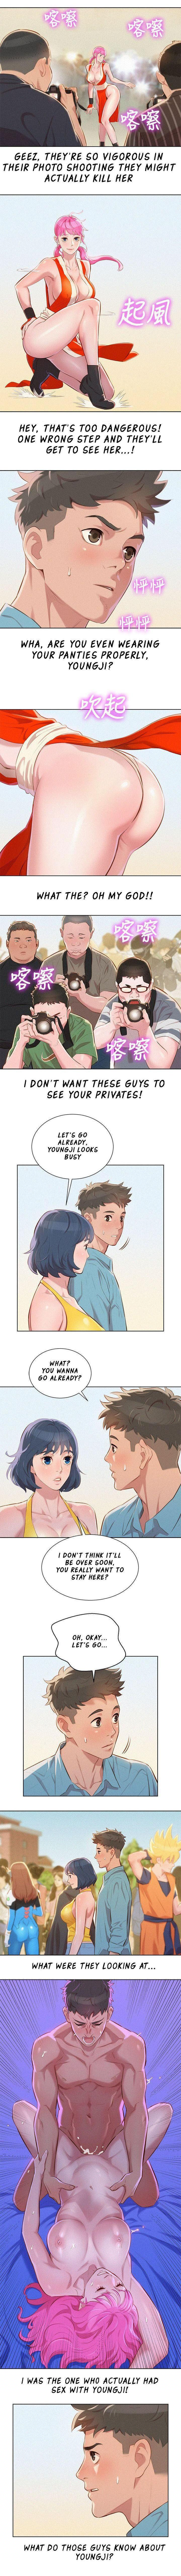 What do you Take me For? Ch.42/? 387